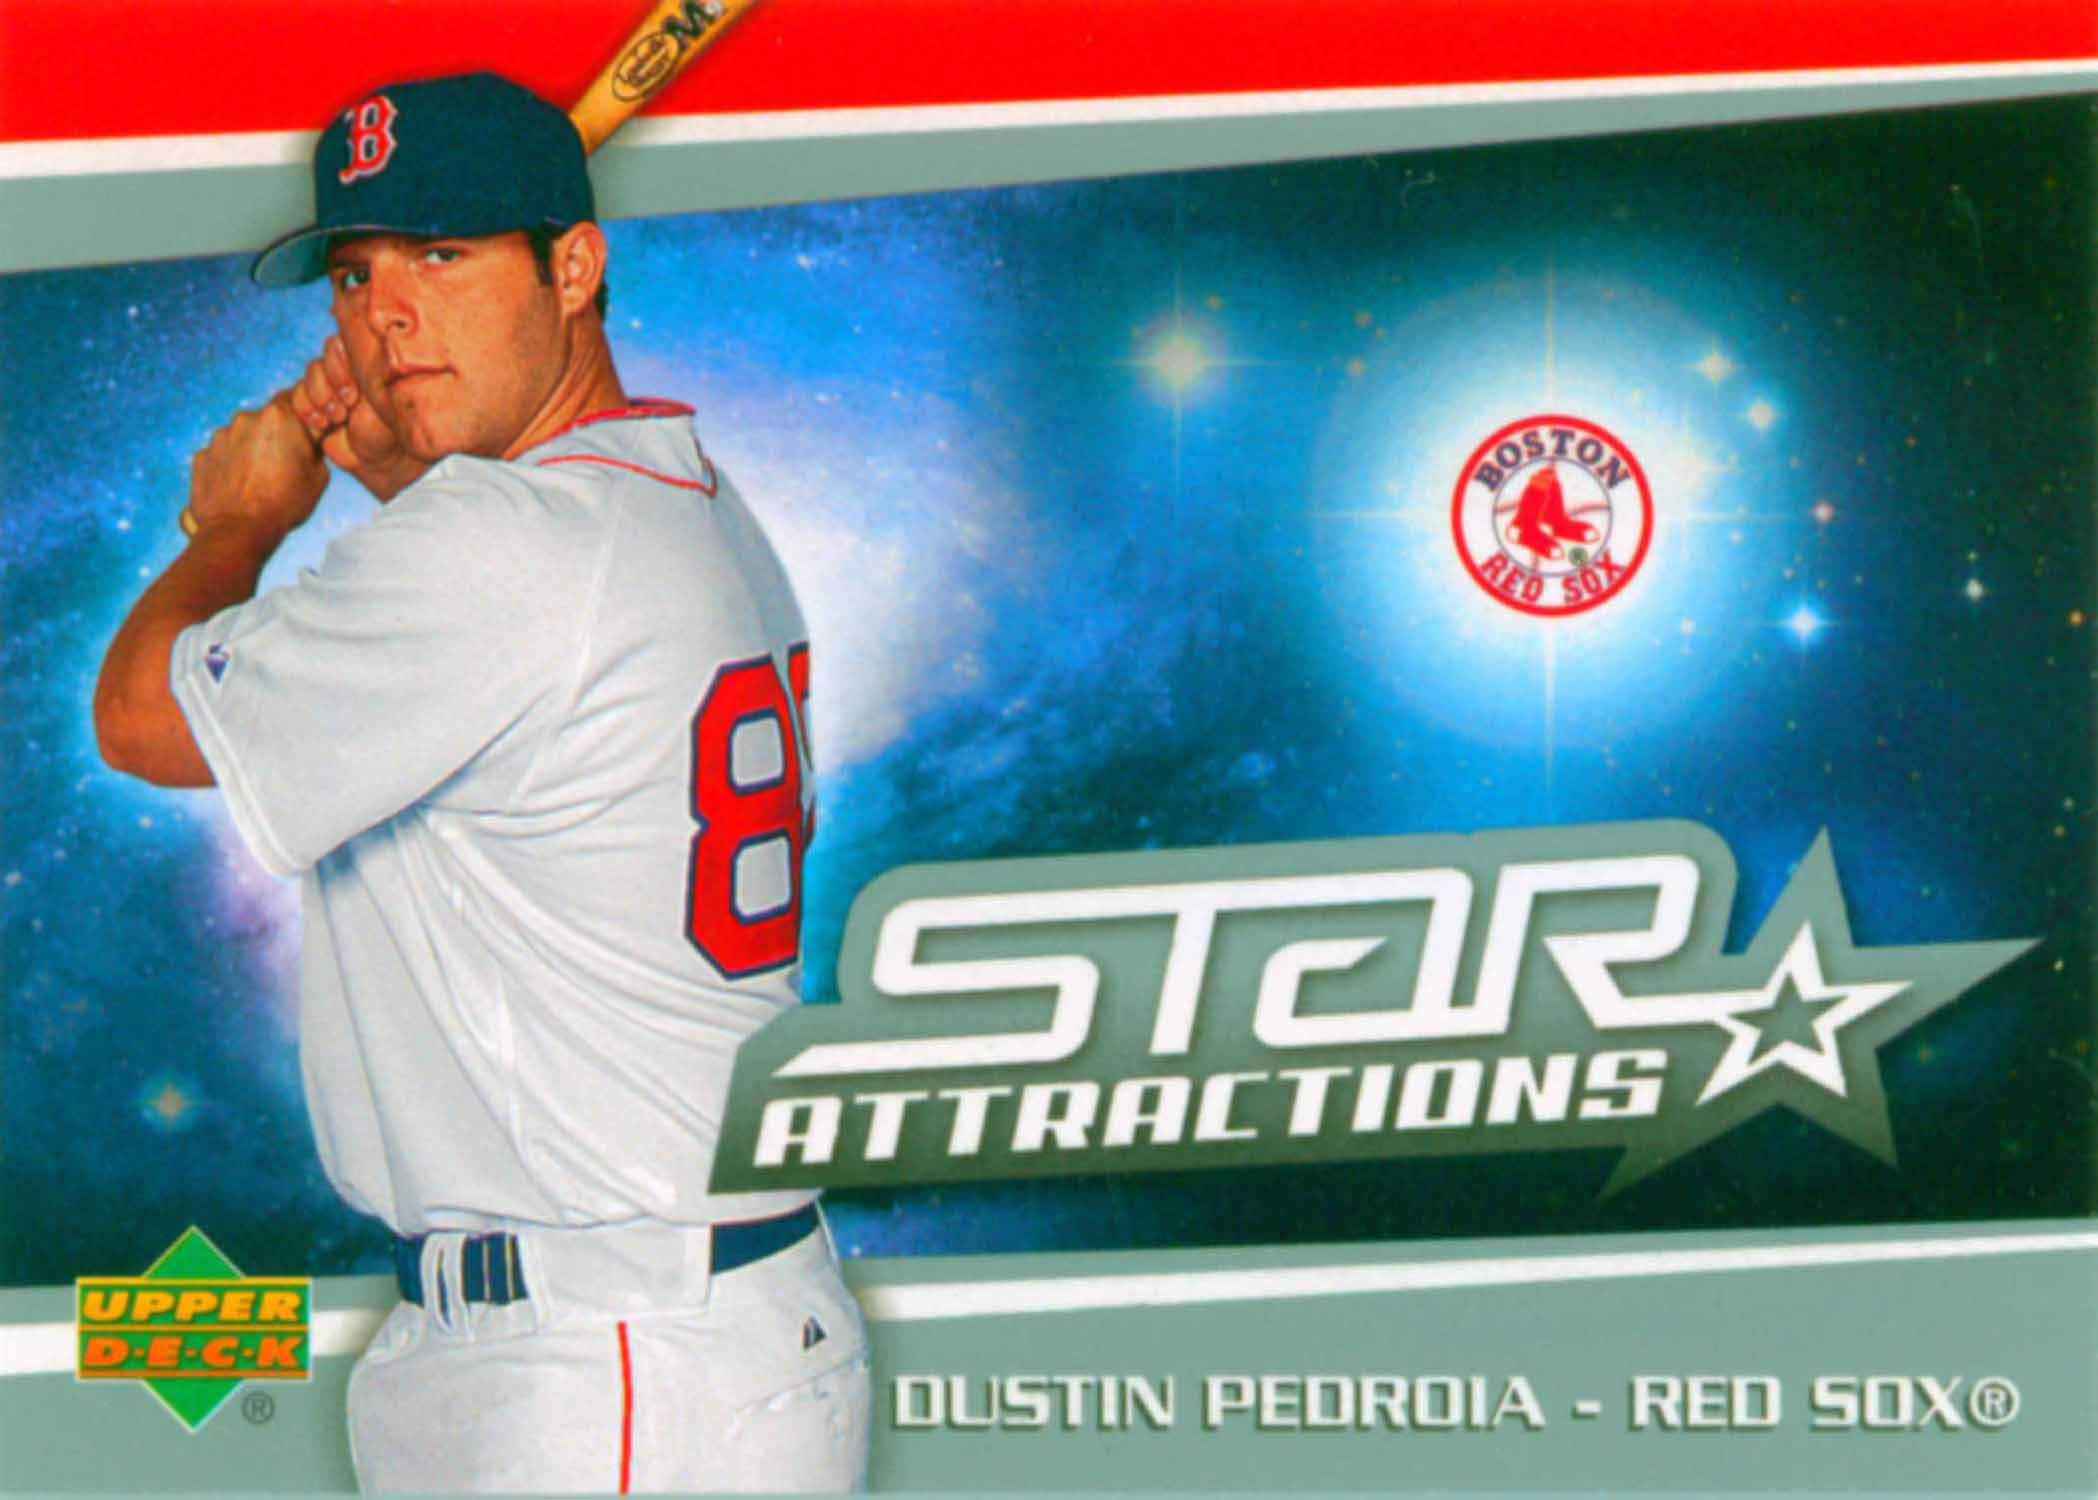 2006 Upper Deck Star Attractions